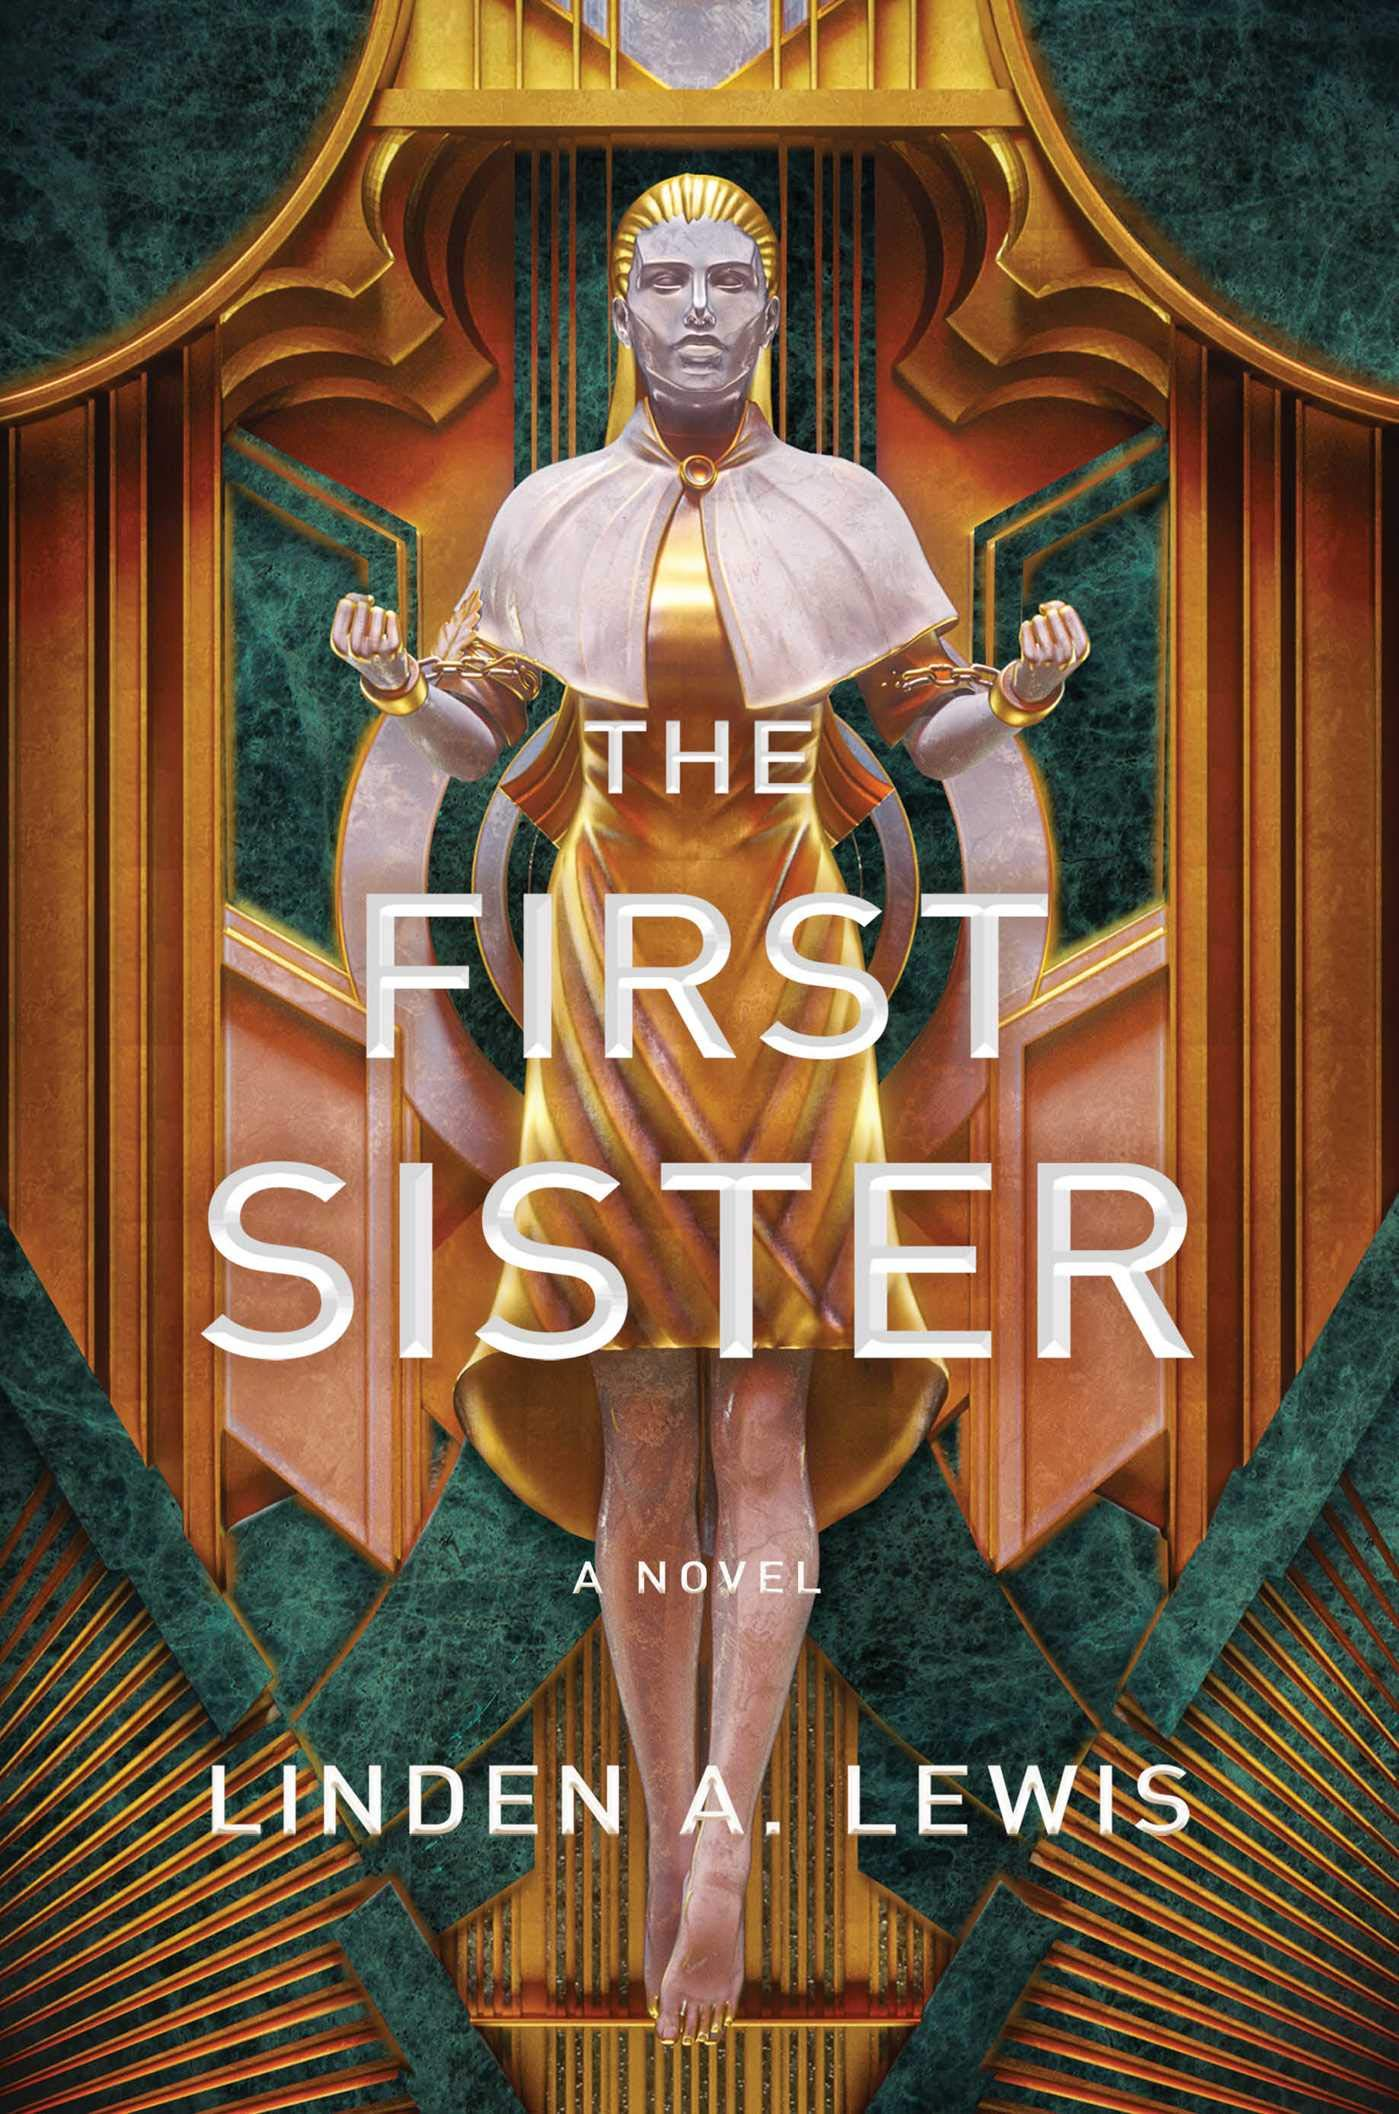 Amazon.com: The First Sister (1) (The First Sister trilogy)  (9781982126995): Lewis, Linden A.: Books